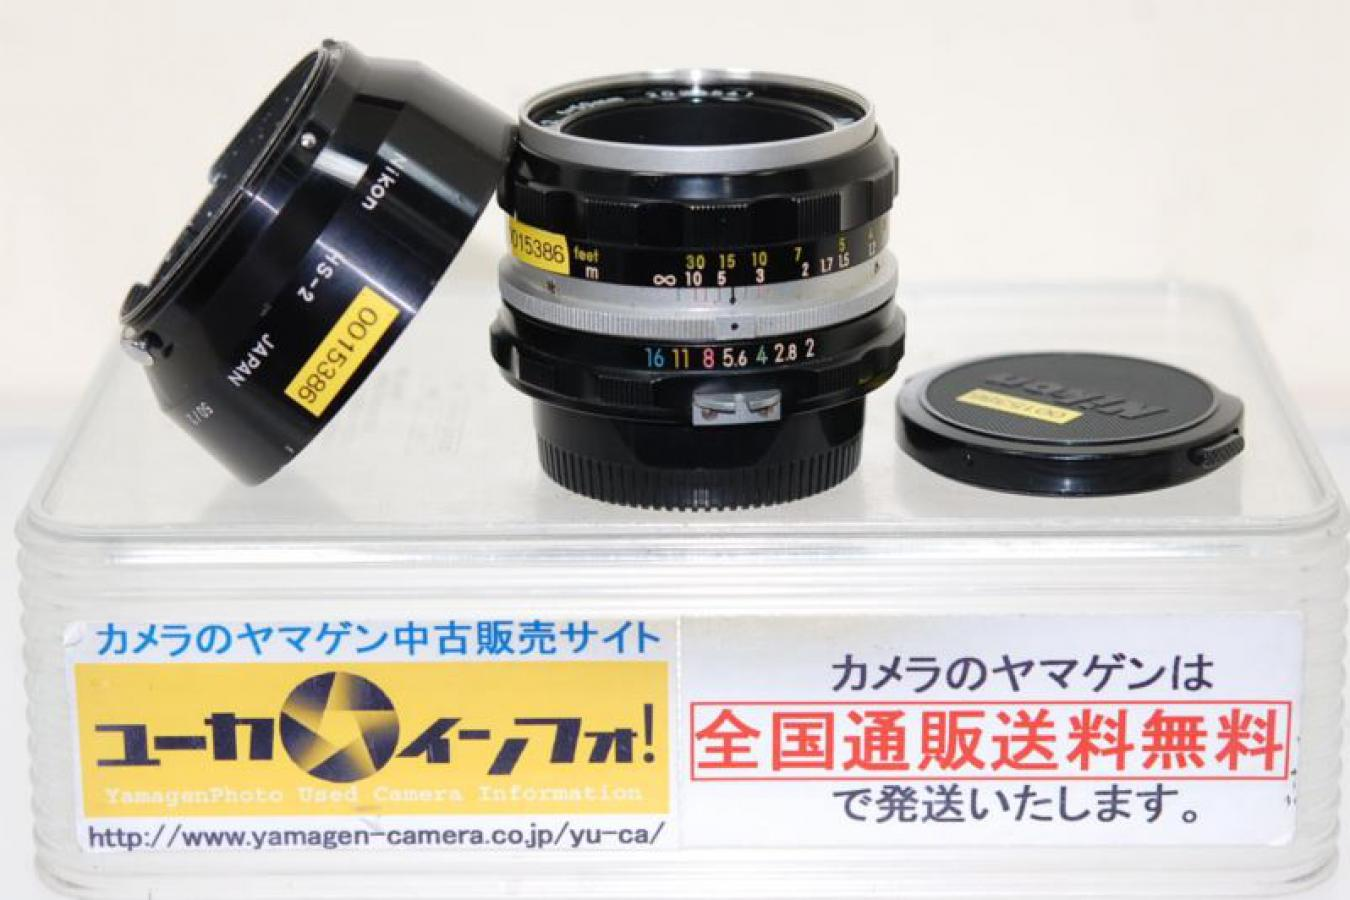 NIKKOR-H Auto 50mm F2 【純正メタルフードHS-2付】